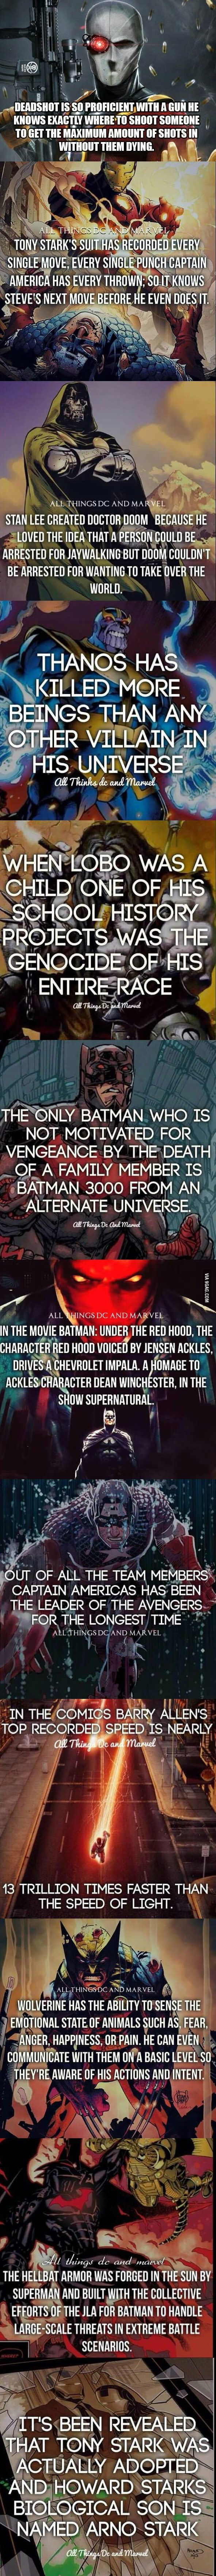 Marvel and Dc facts #4